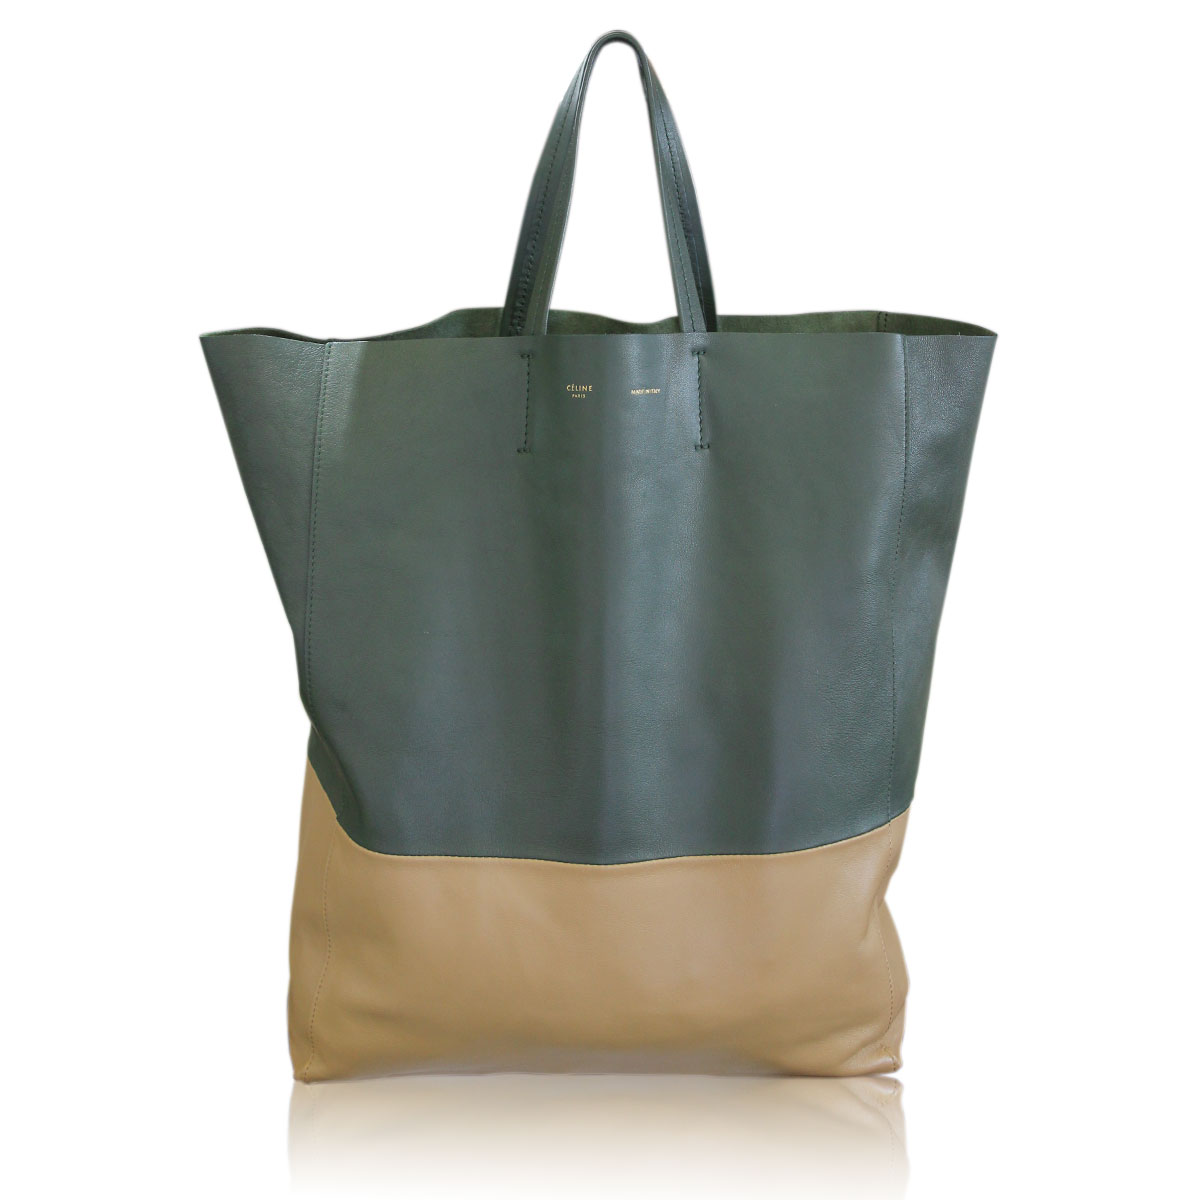 Sale! Celine Vertical Bi-Cabas Green Khaki Two Tone Tote Bag out of ... 7175c1ed50766